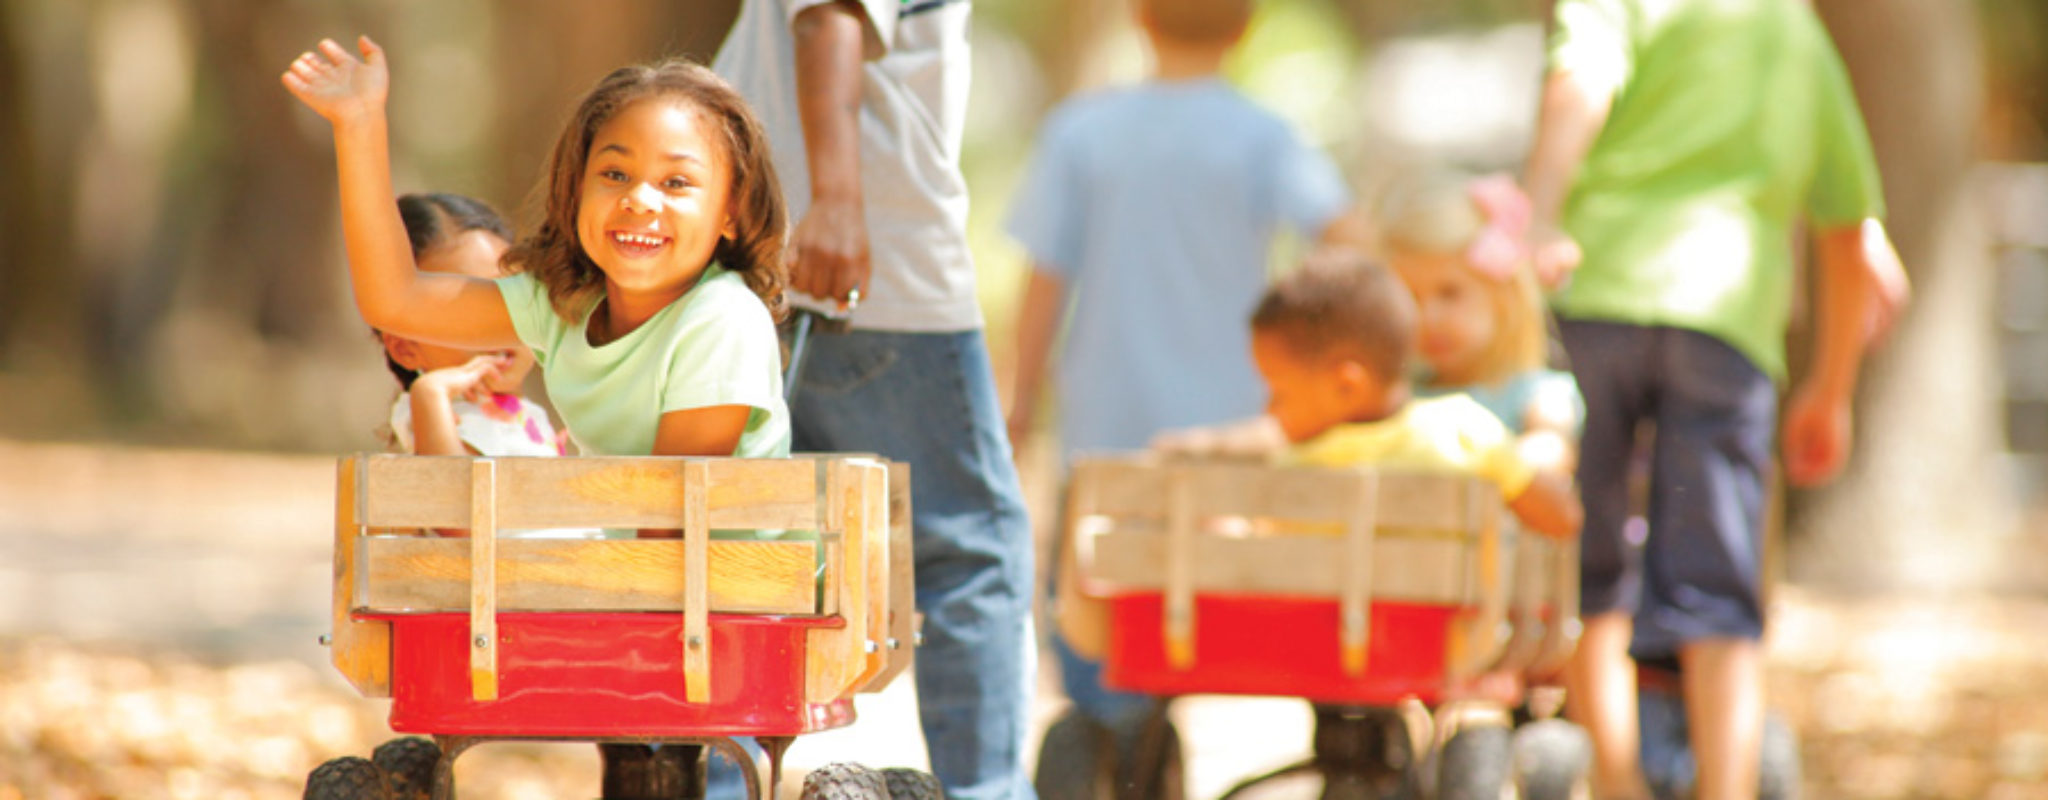 10 Asthma Questions Answered - Powered by Nemours Children's Health System